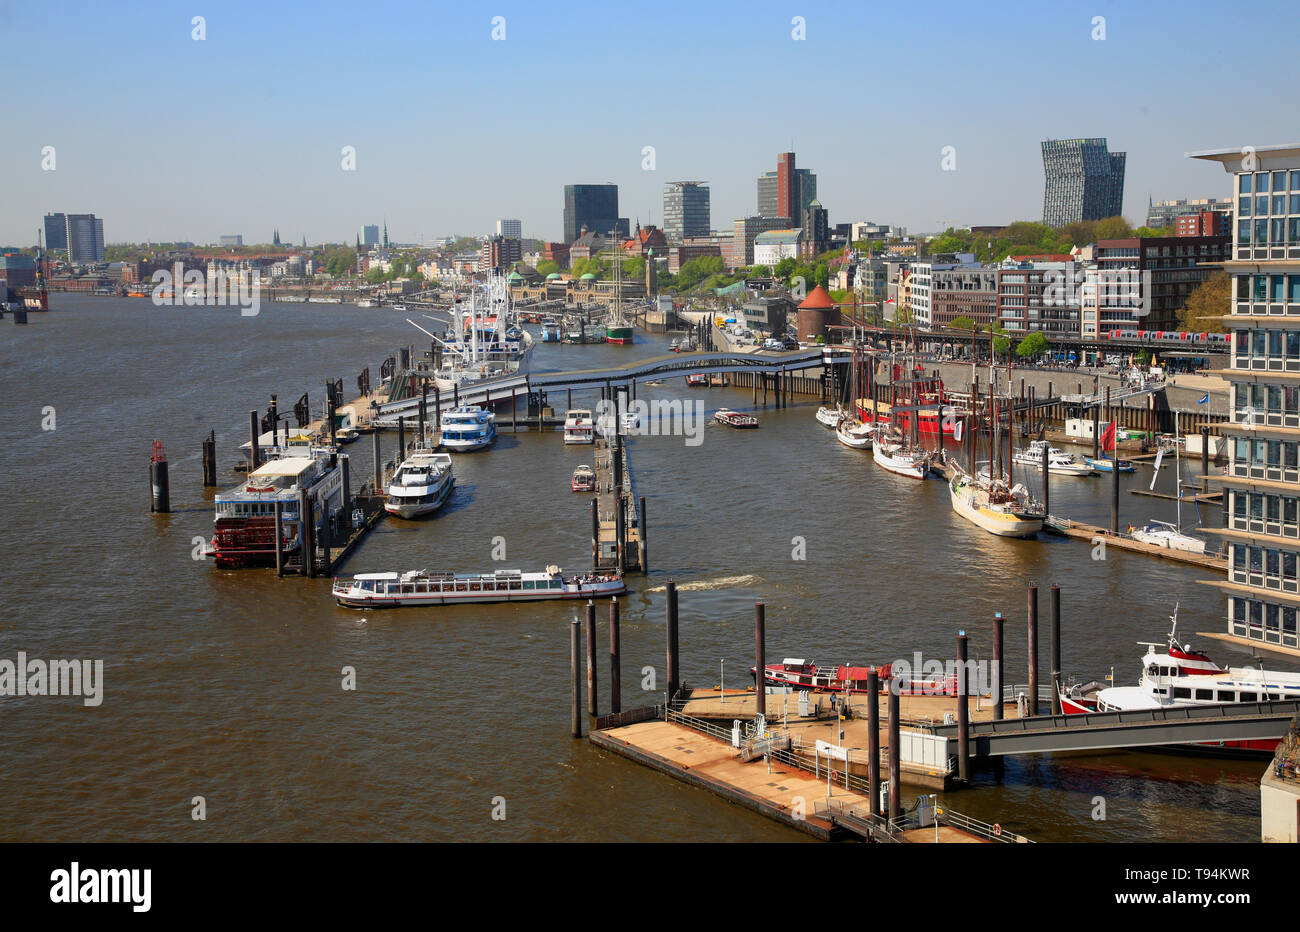 View from Elbphilharmonie over river Elbe und the nharbour, Hamburg, Germany, Europe Stock Photo